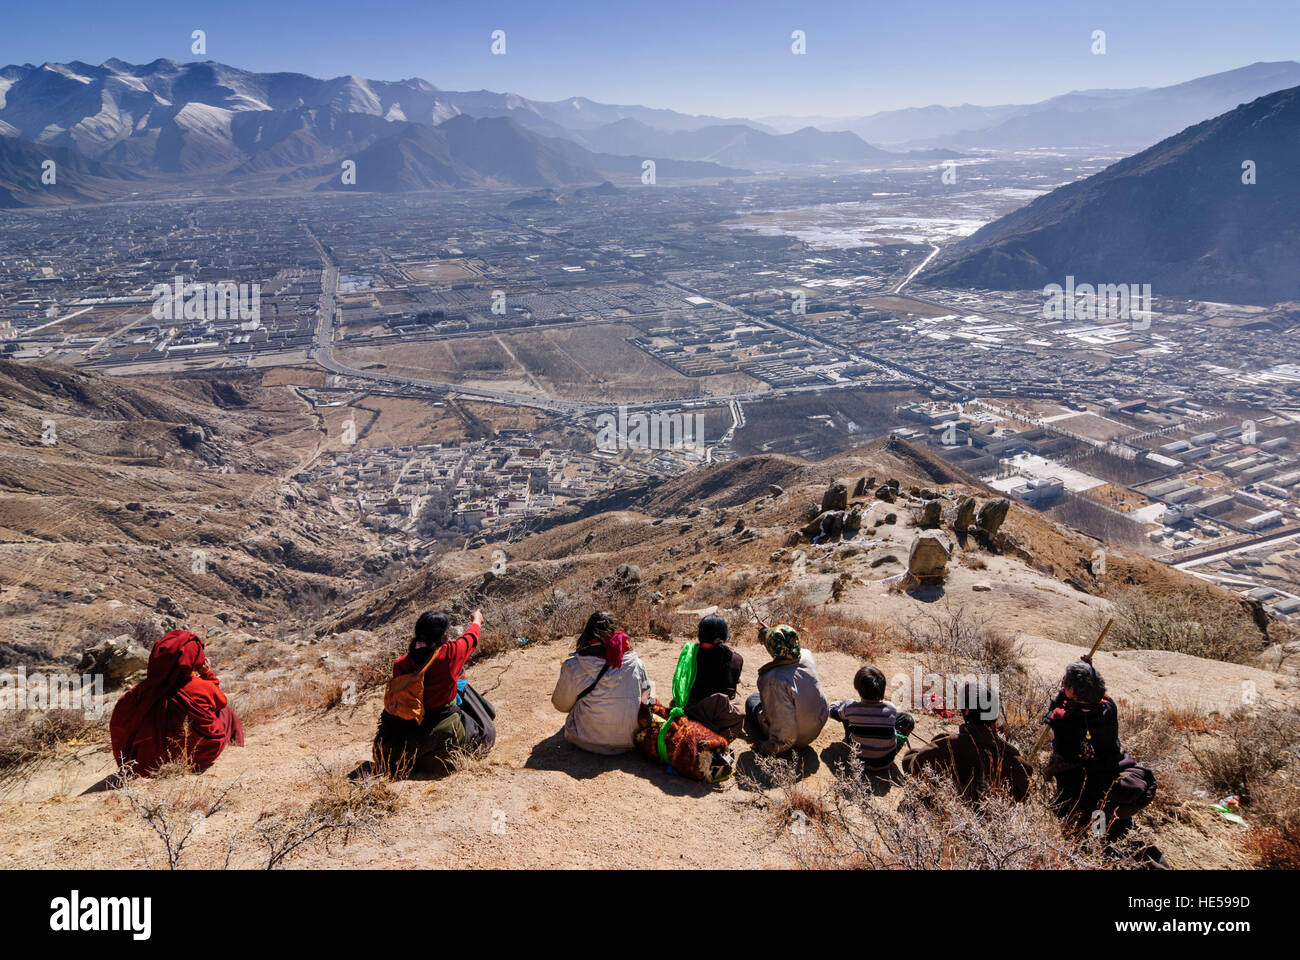 Lhasa: Tibetans look out from above the Sera monastery on Lhasa and point to the Potala, Tibet, China - Stock Image